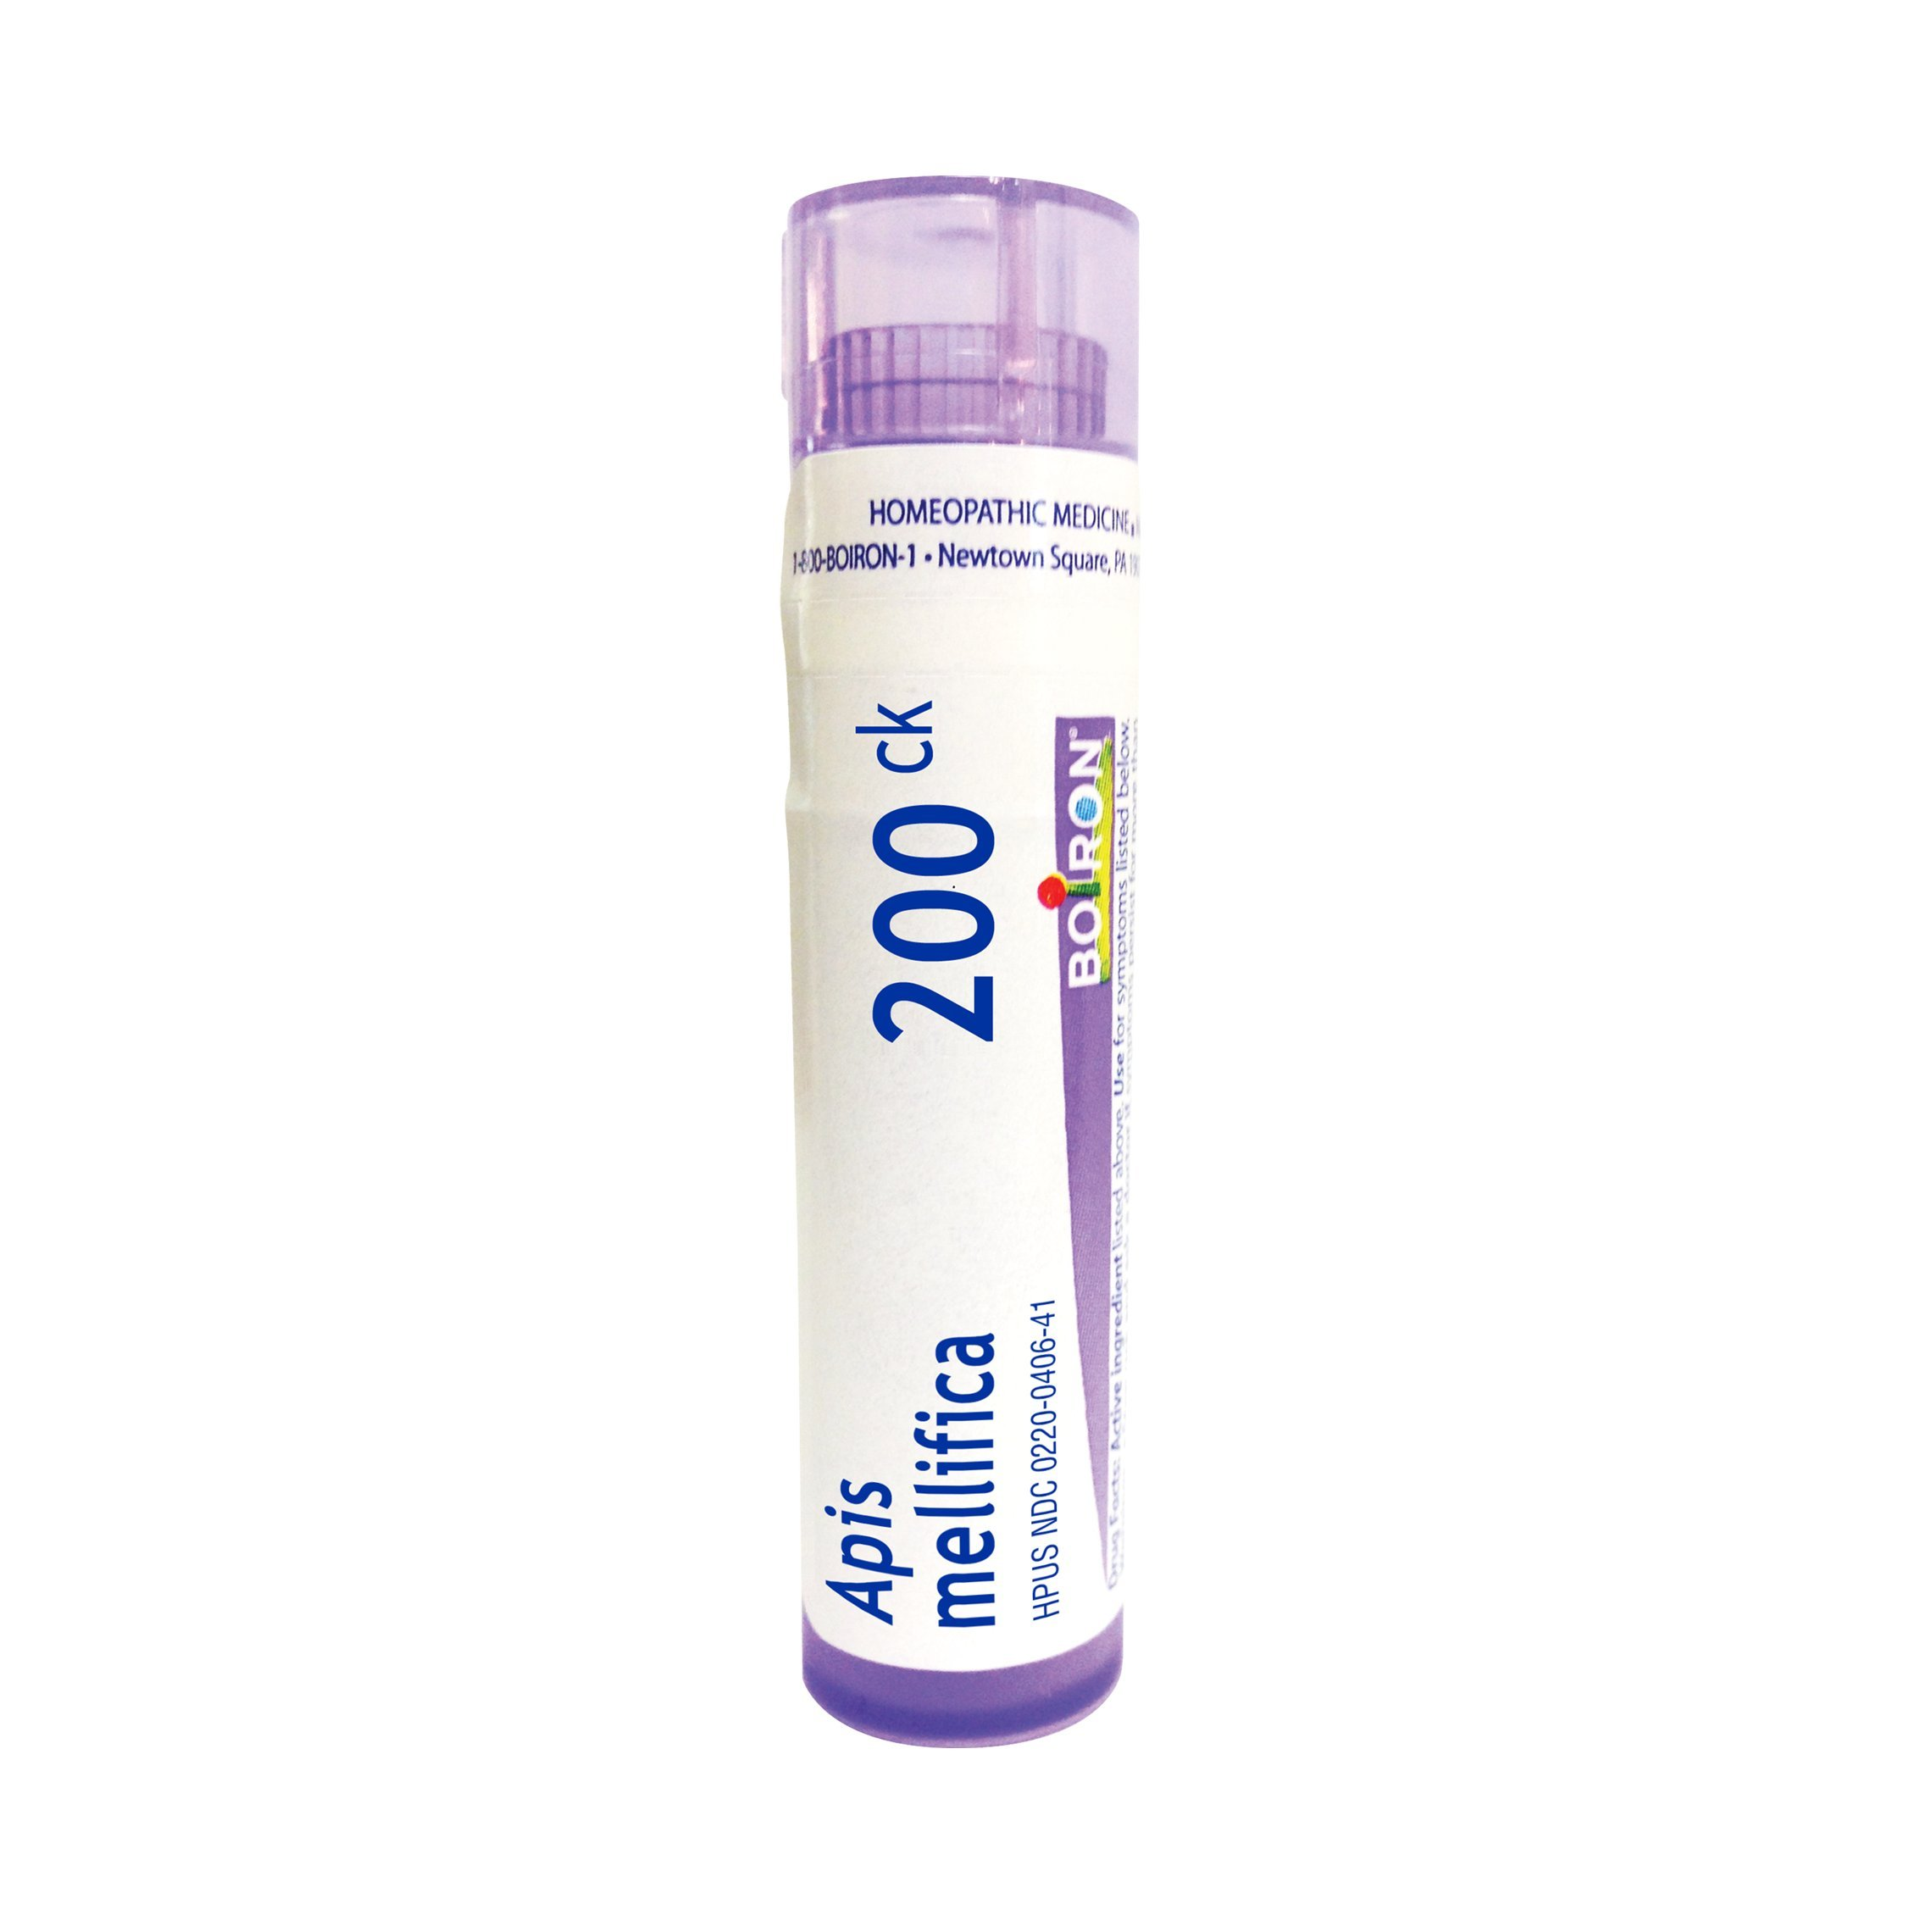 Boiron Apis Mellifica 200CK, 80 Pellets, Homeopathic Medicine for Insect Bites